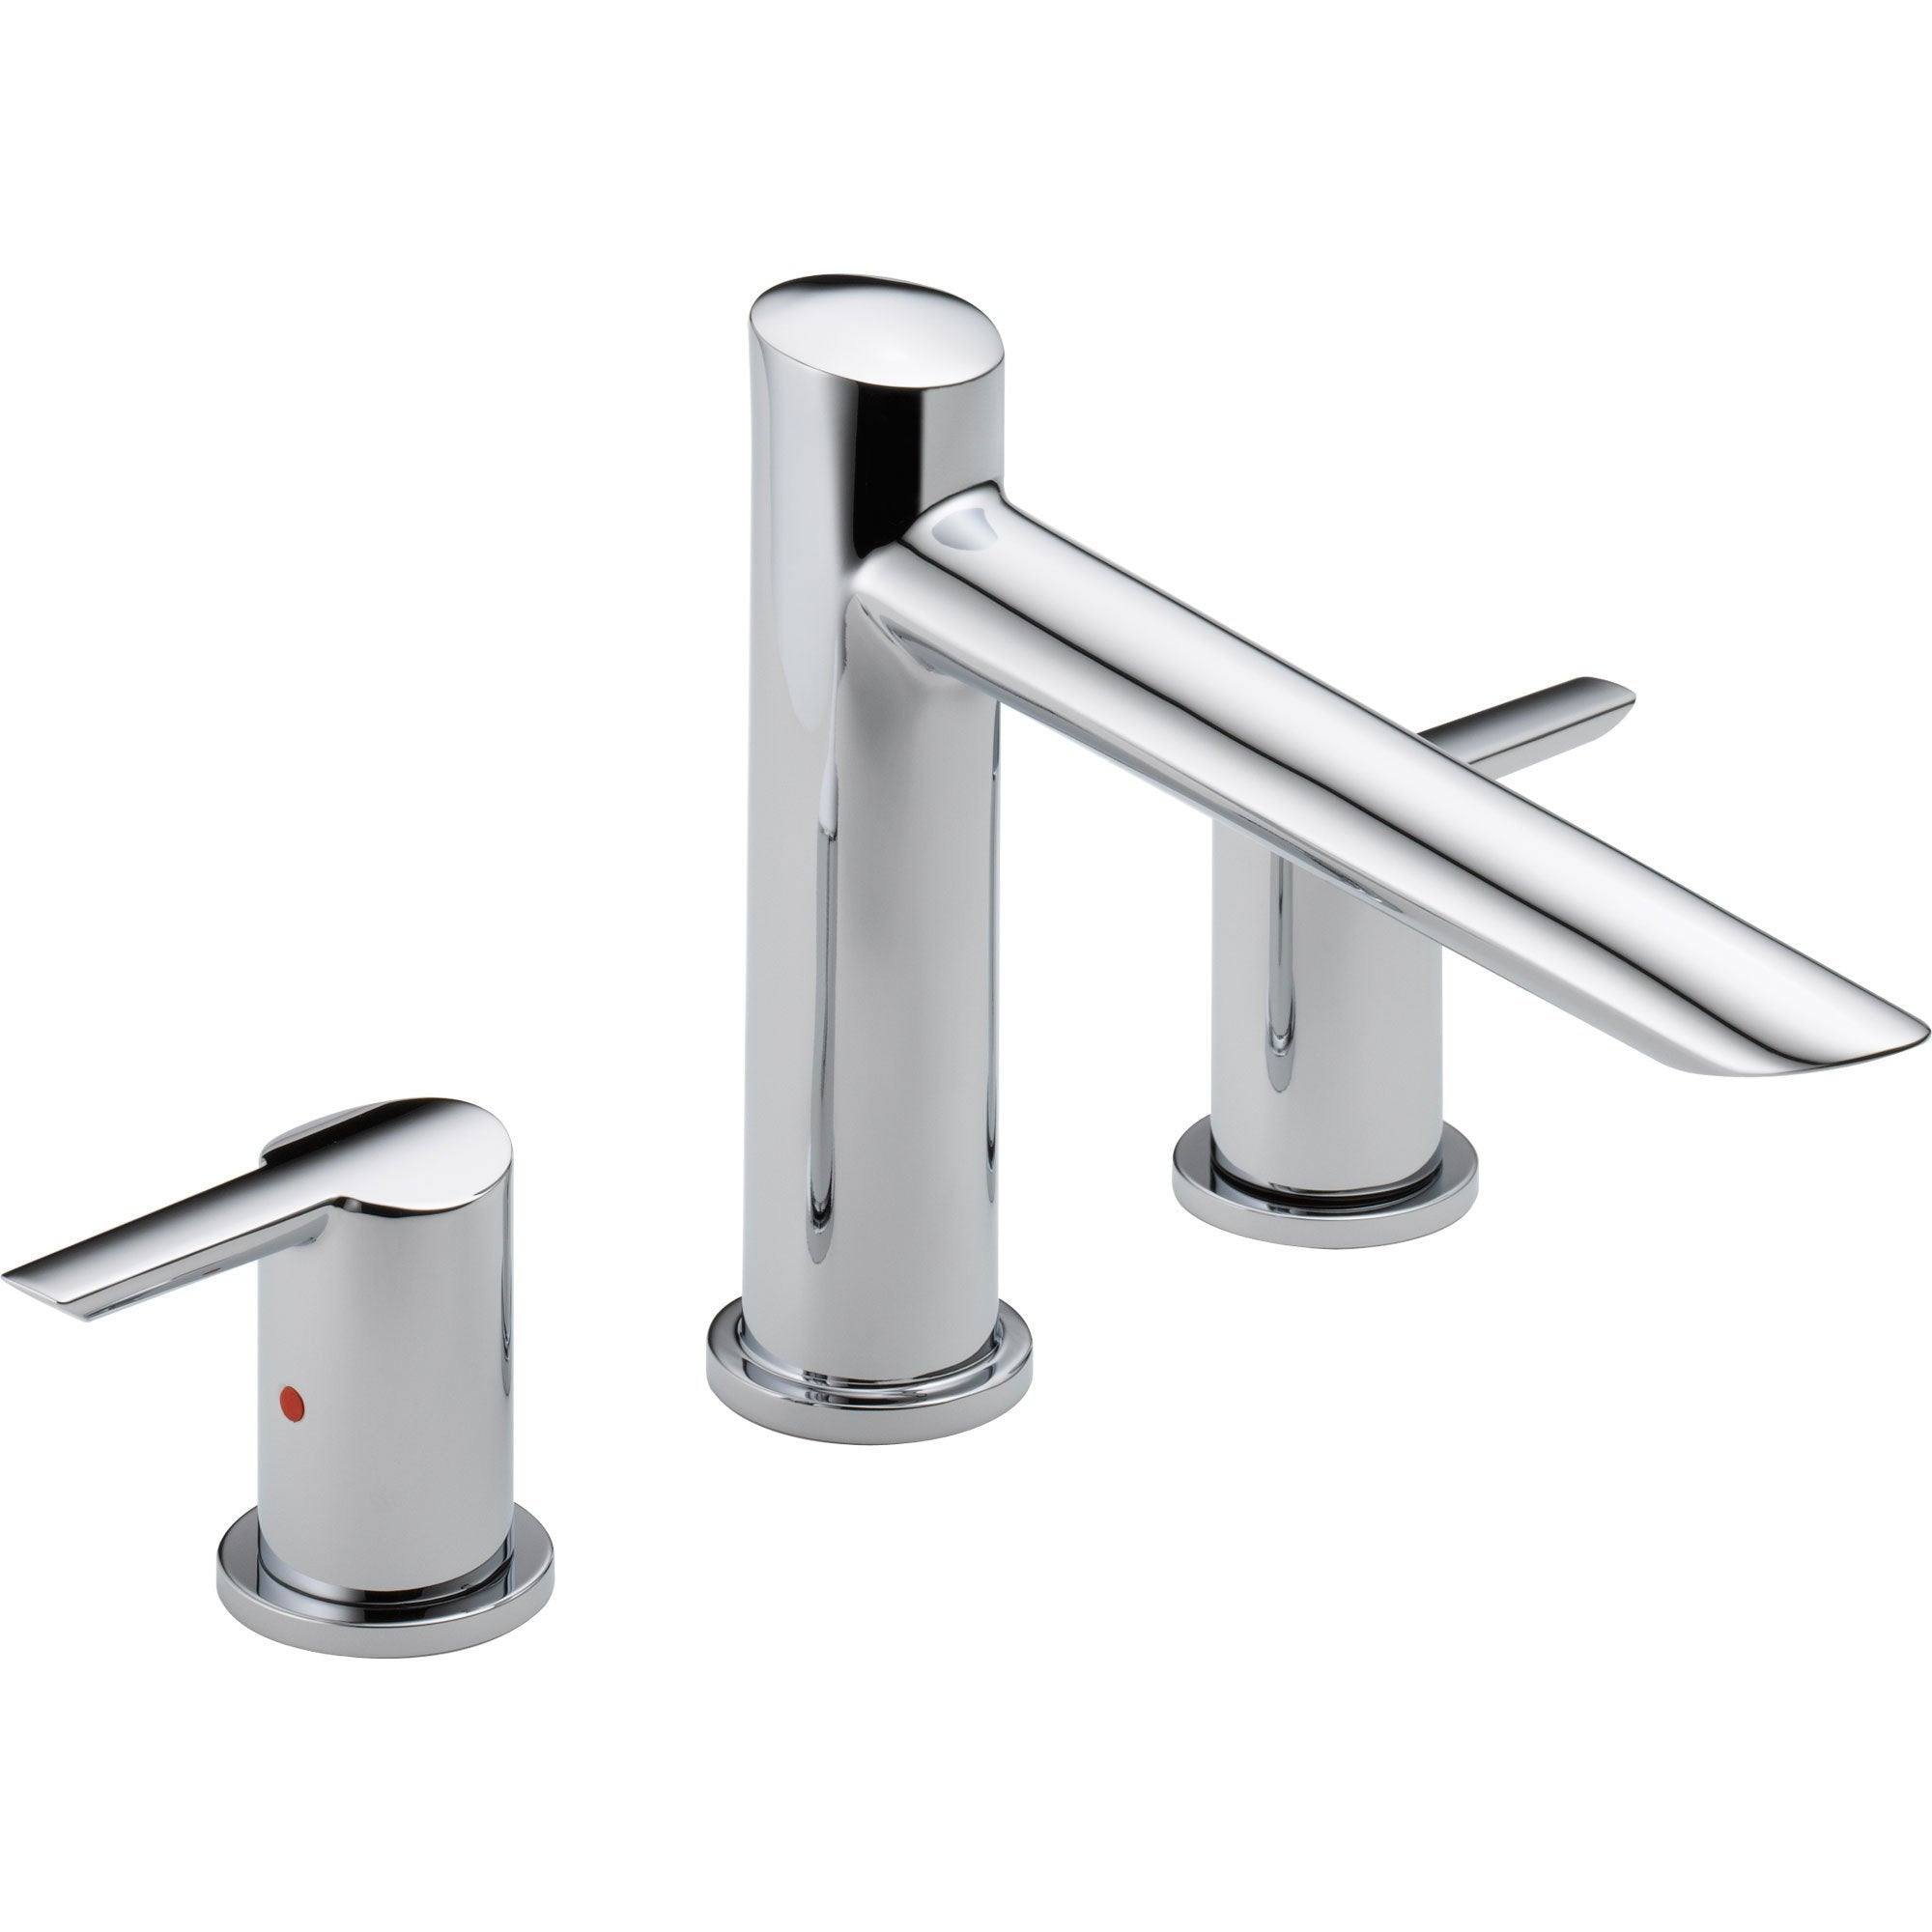 Delta Compel Modern Chrome 2-Handle Roman Tub Filler Faucet Trim Kit 584056